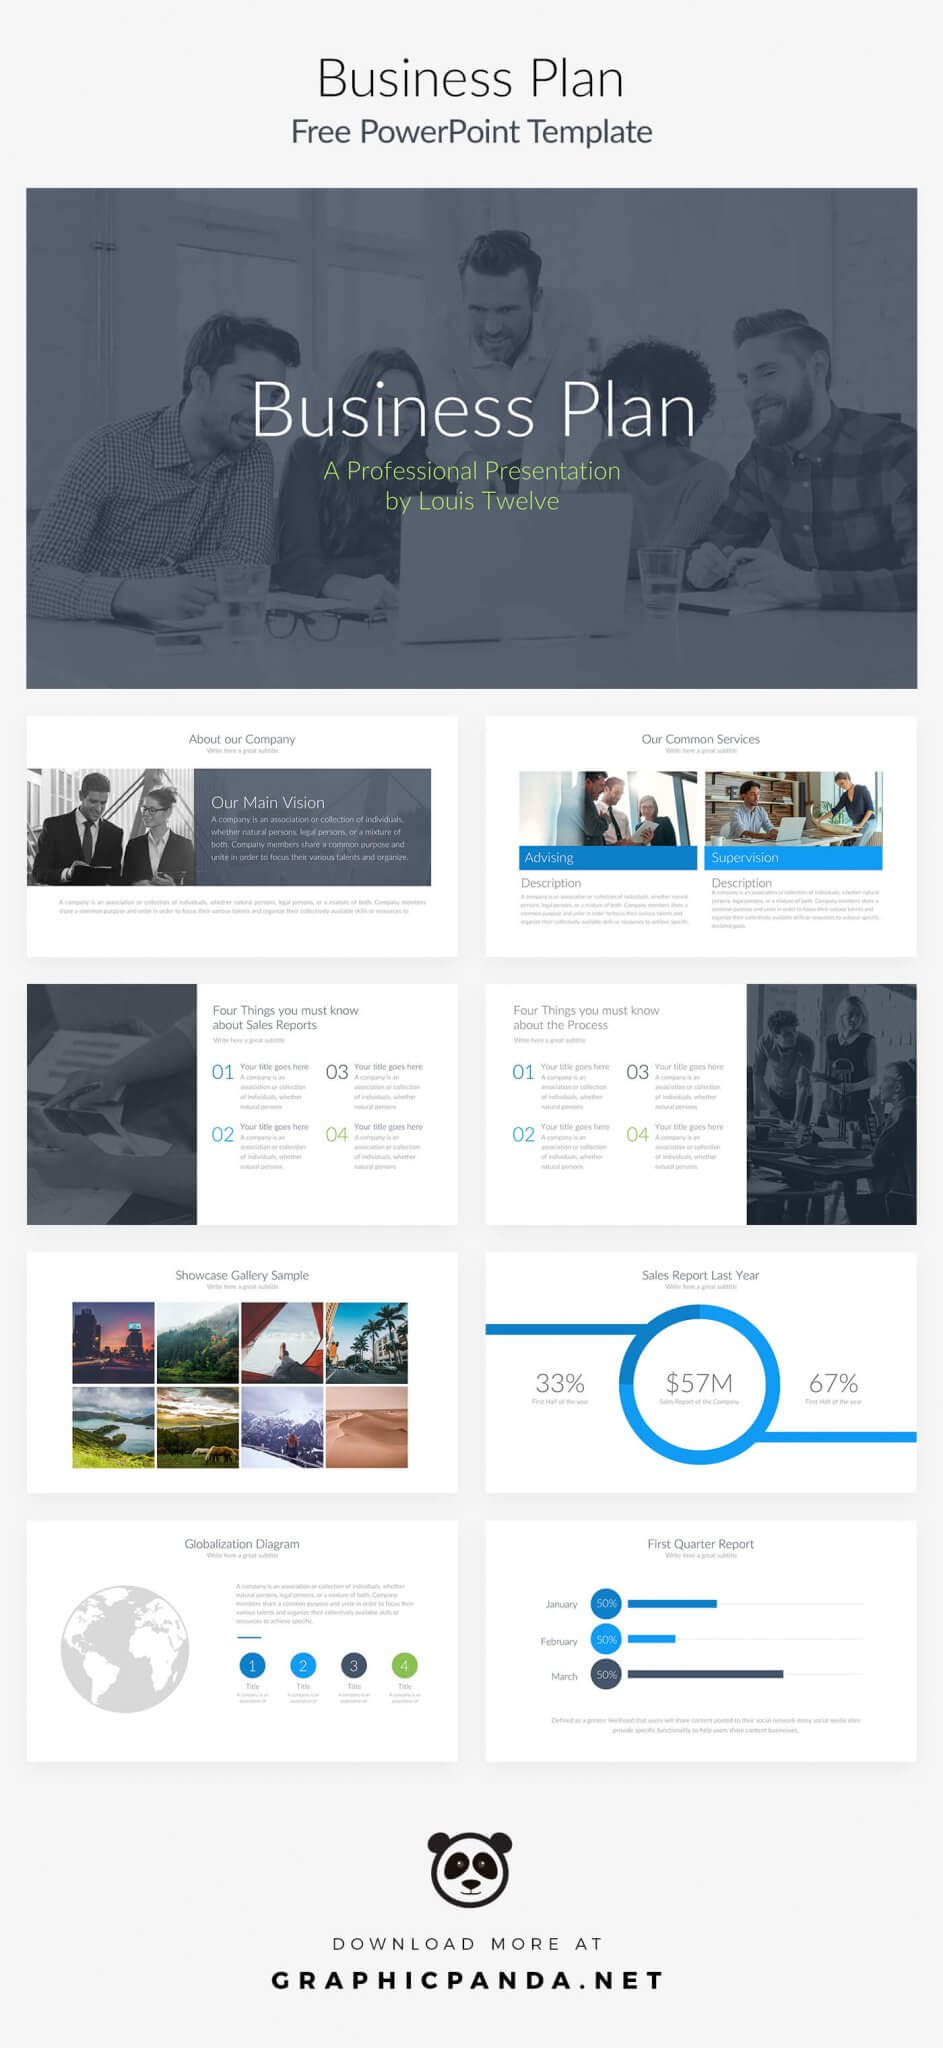 Free Business Plan Powerpoint Presentation Template For Business Plan Presentation Template Ppt